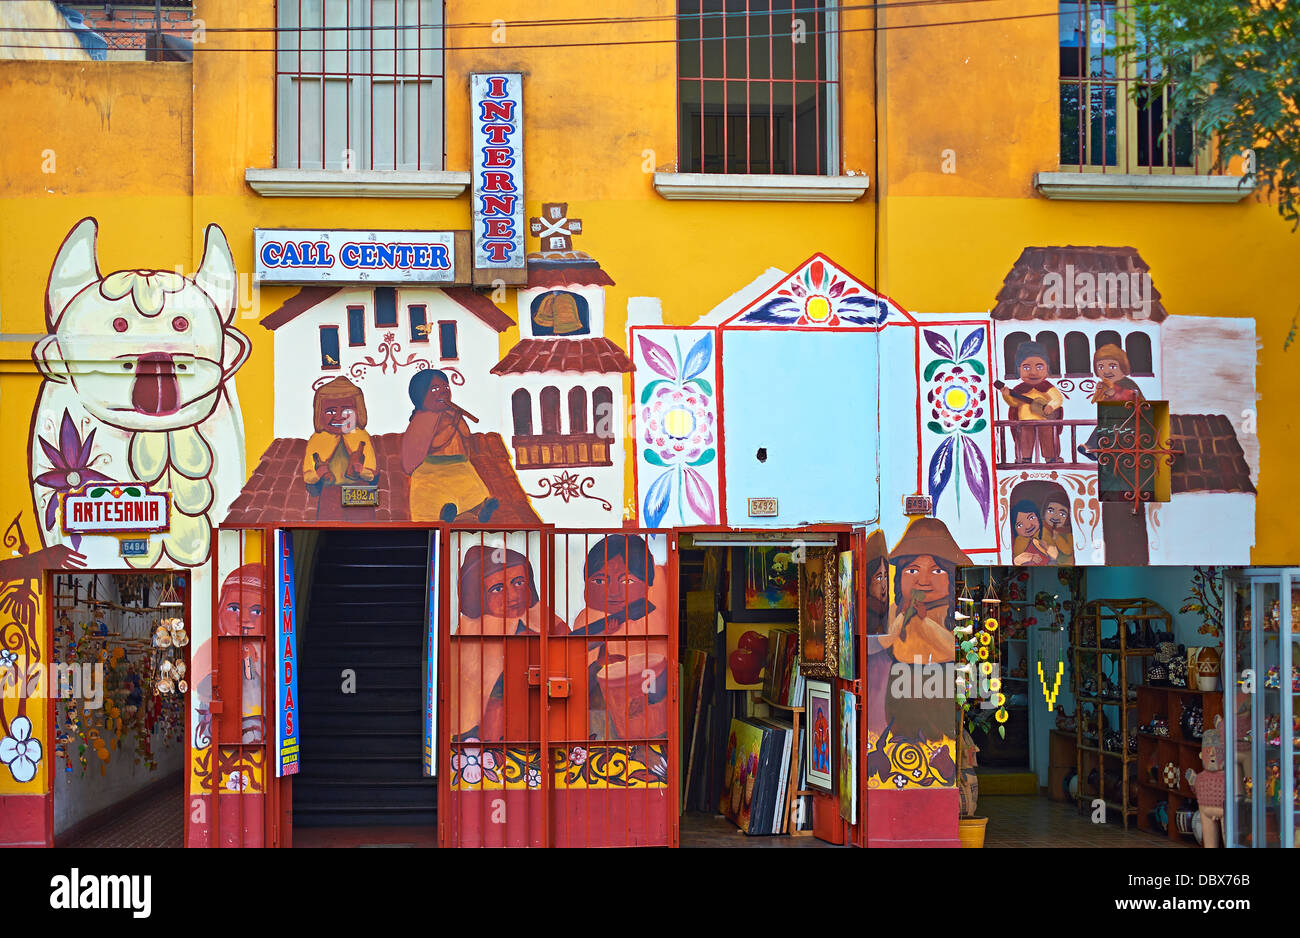 Painted Shop fronts in the Miraflores district of Lima, Peru. - Stock Image